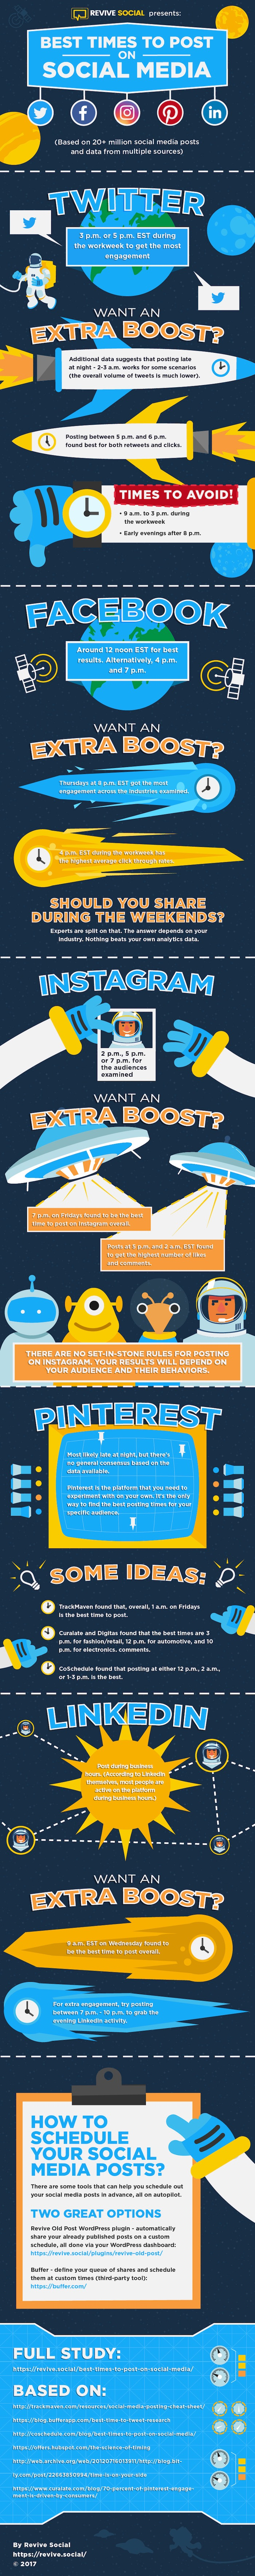 Infographic: When to post on social media